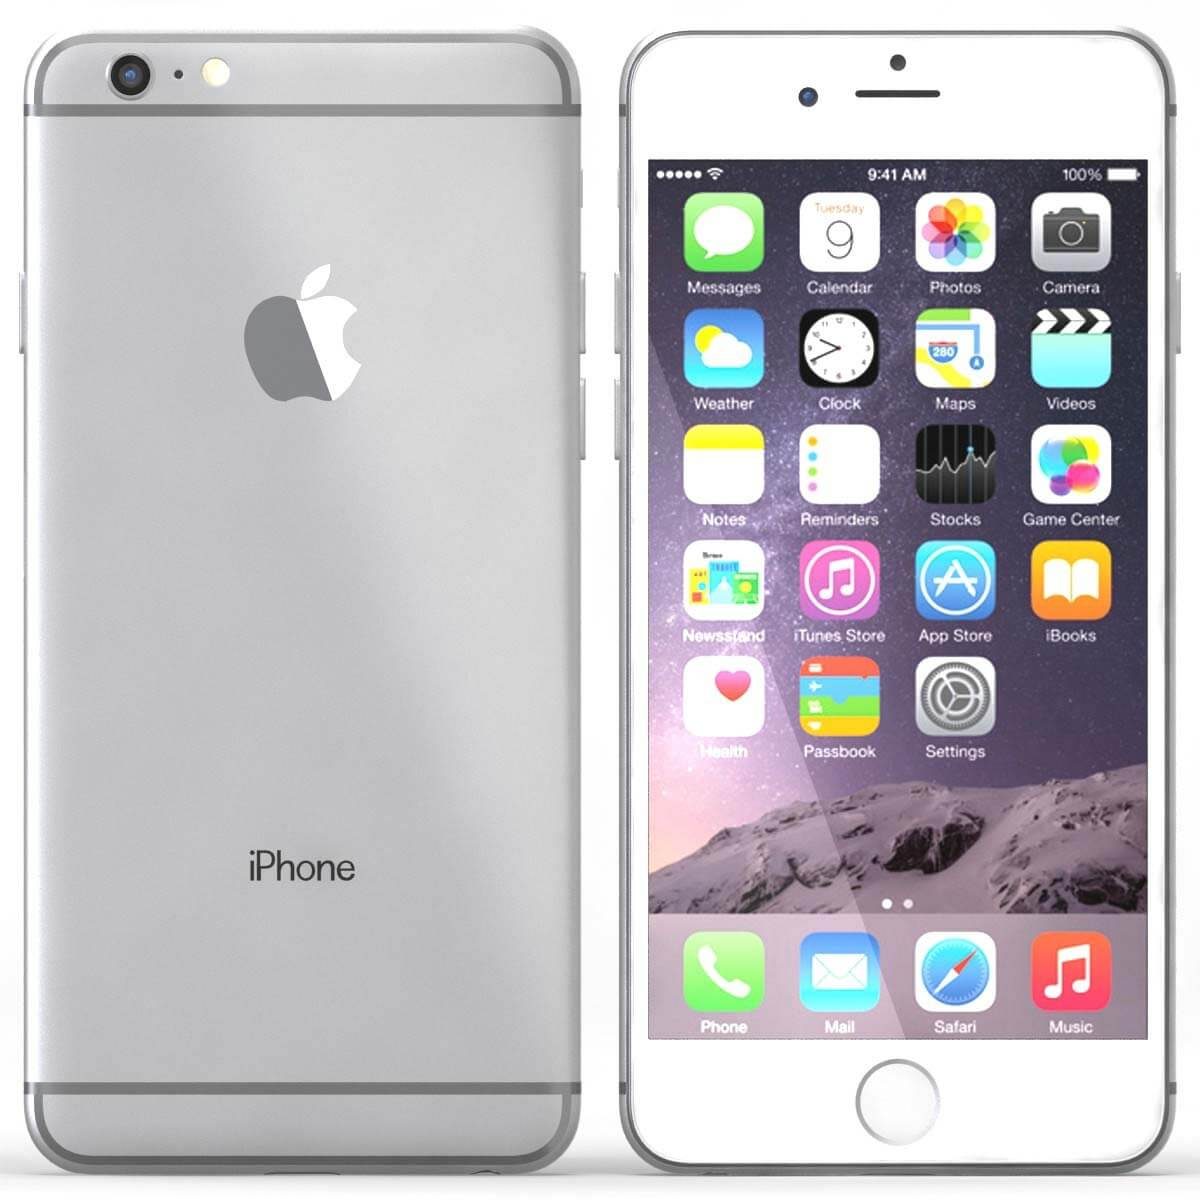 iPhone 6 S (space grey colour)